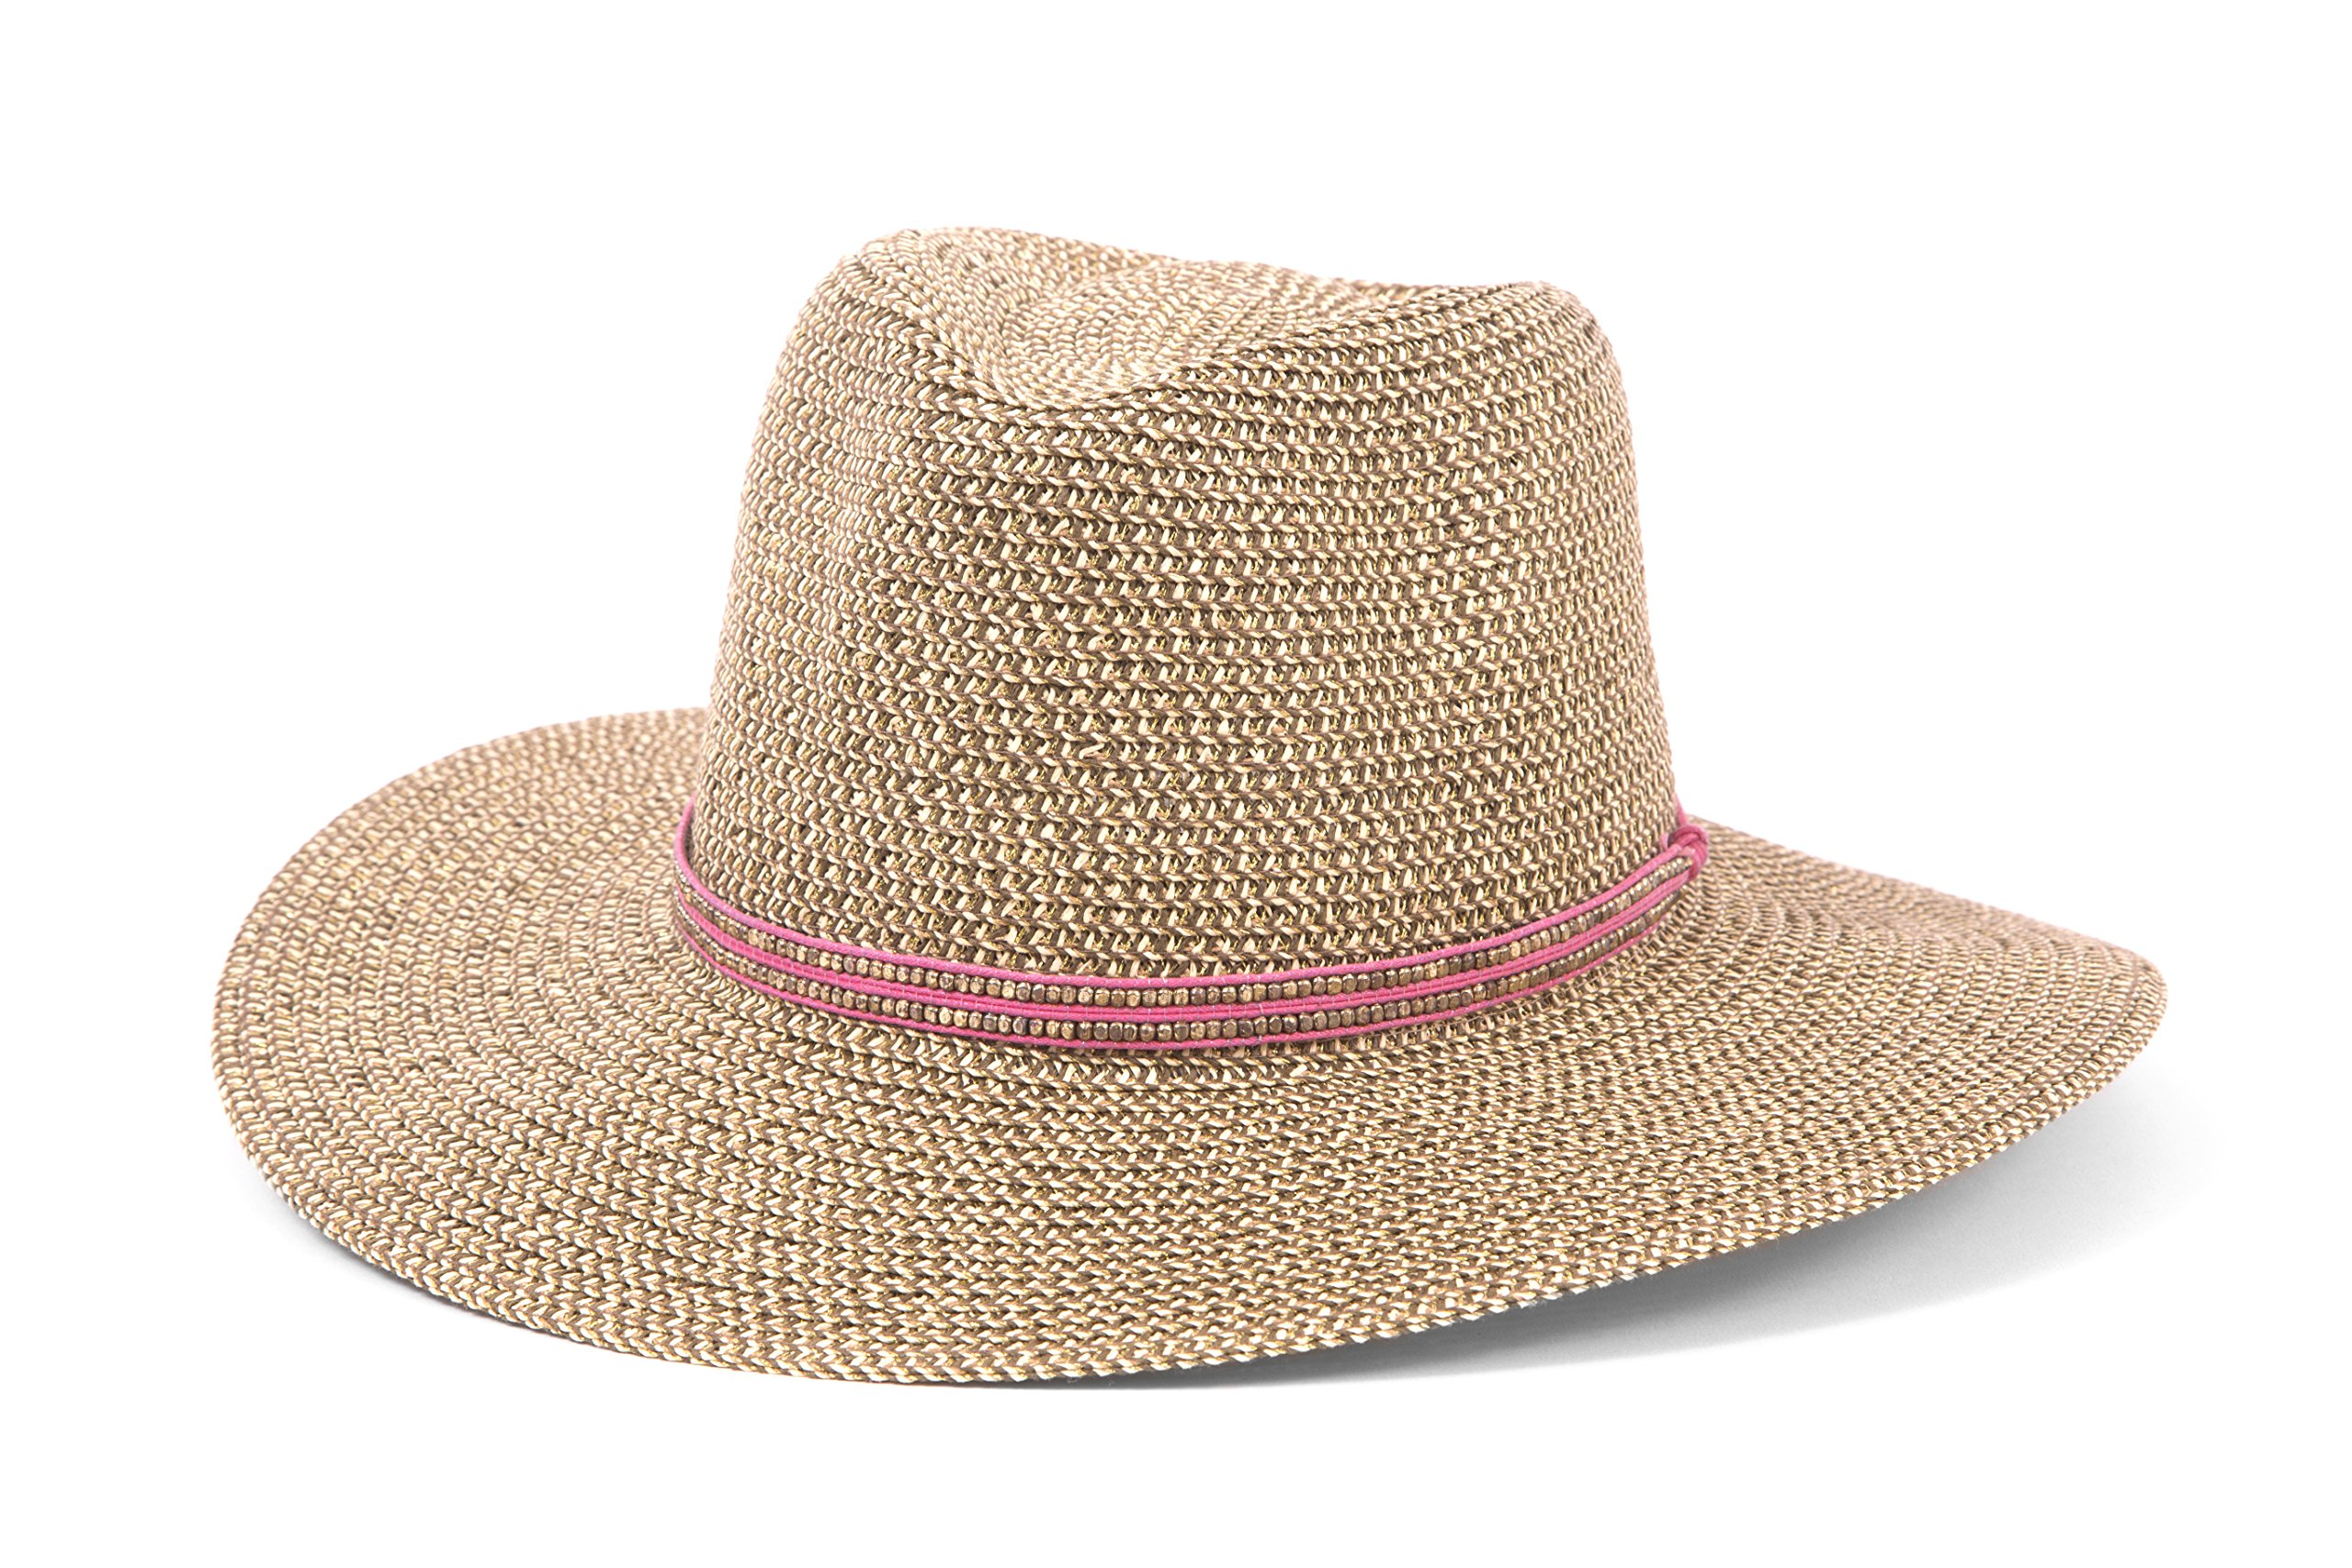 'ale by alessandra Women's Kenzie Toyo Straw Fedora Sunhat Packable and Adjustable, Pink, One Size by ale by Alessandra